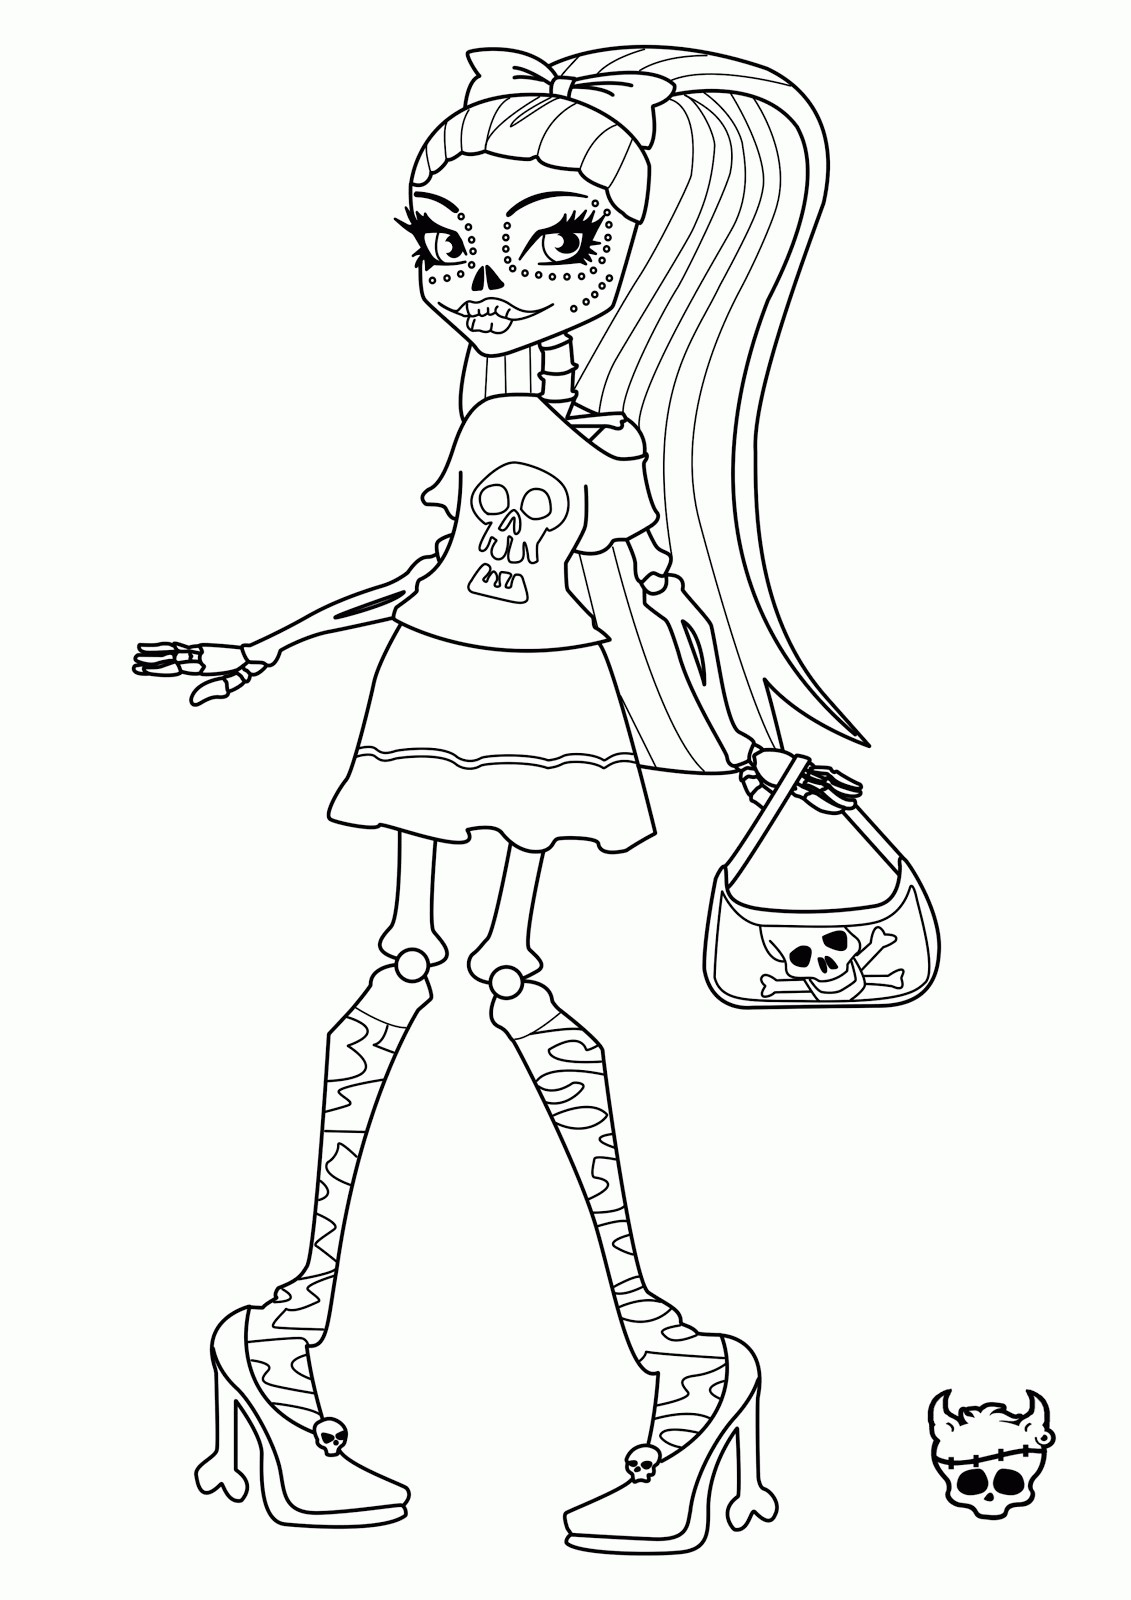 Monster High Coloring Pages Cartoon Jr Fresh Frankie Stein Color to Print Of Exquisite Monster High Printables Coloring Pages Free Gallery